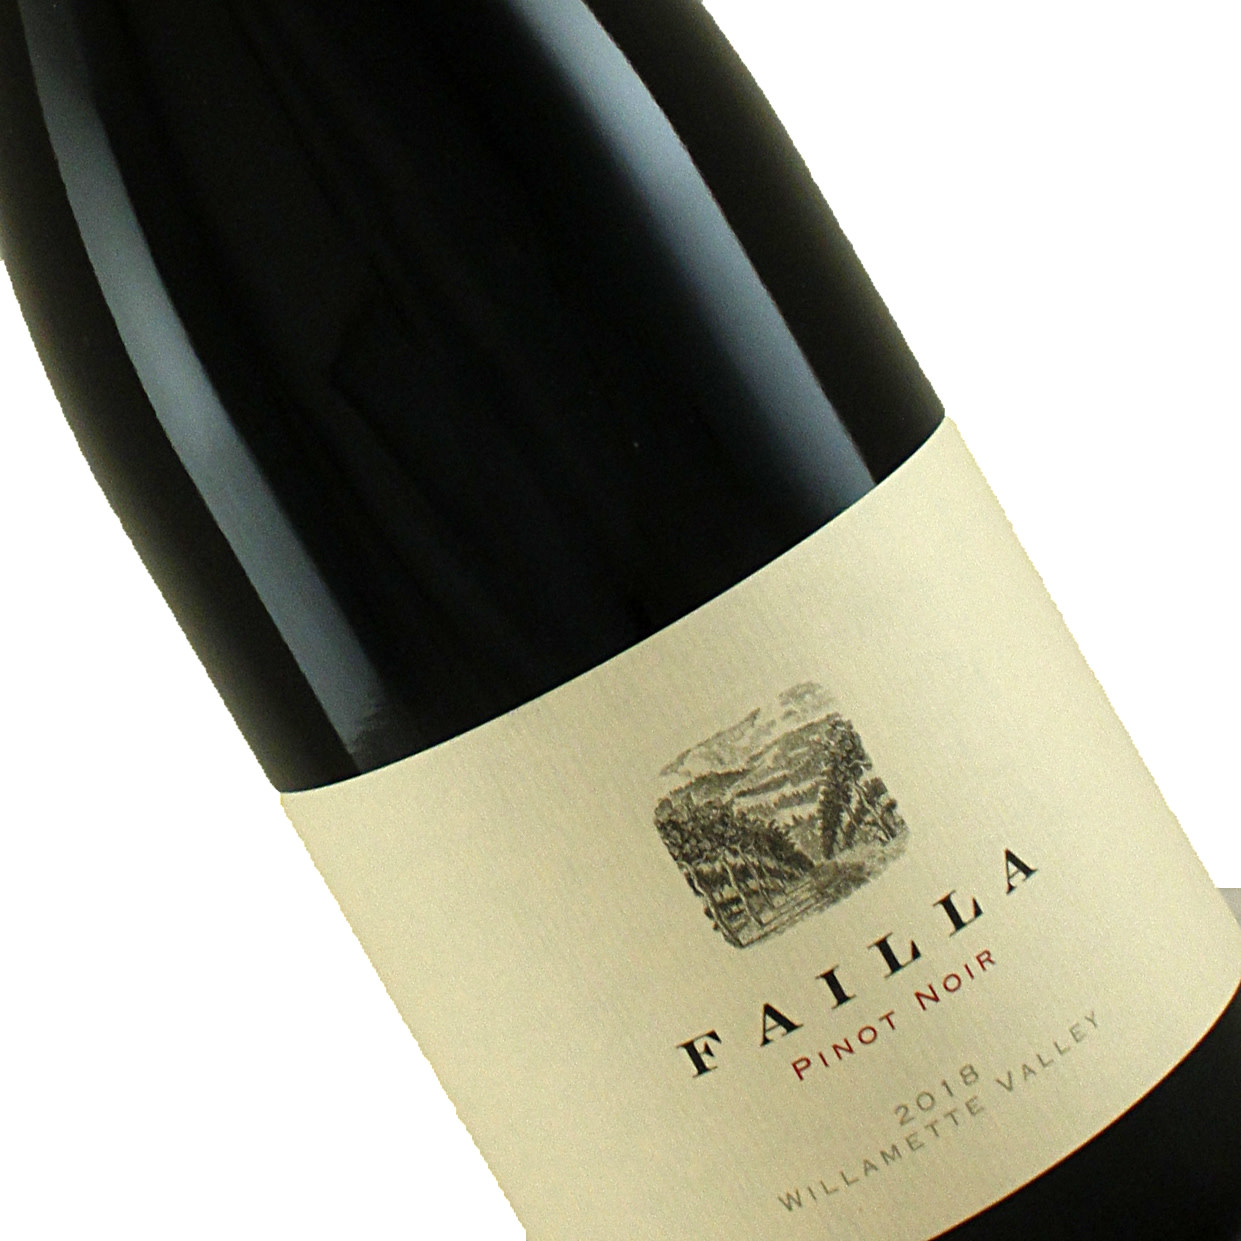 Failla 2018 Pinot Noir, Willamette Valley, Oregon